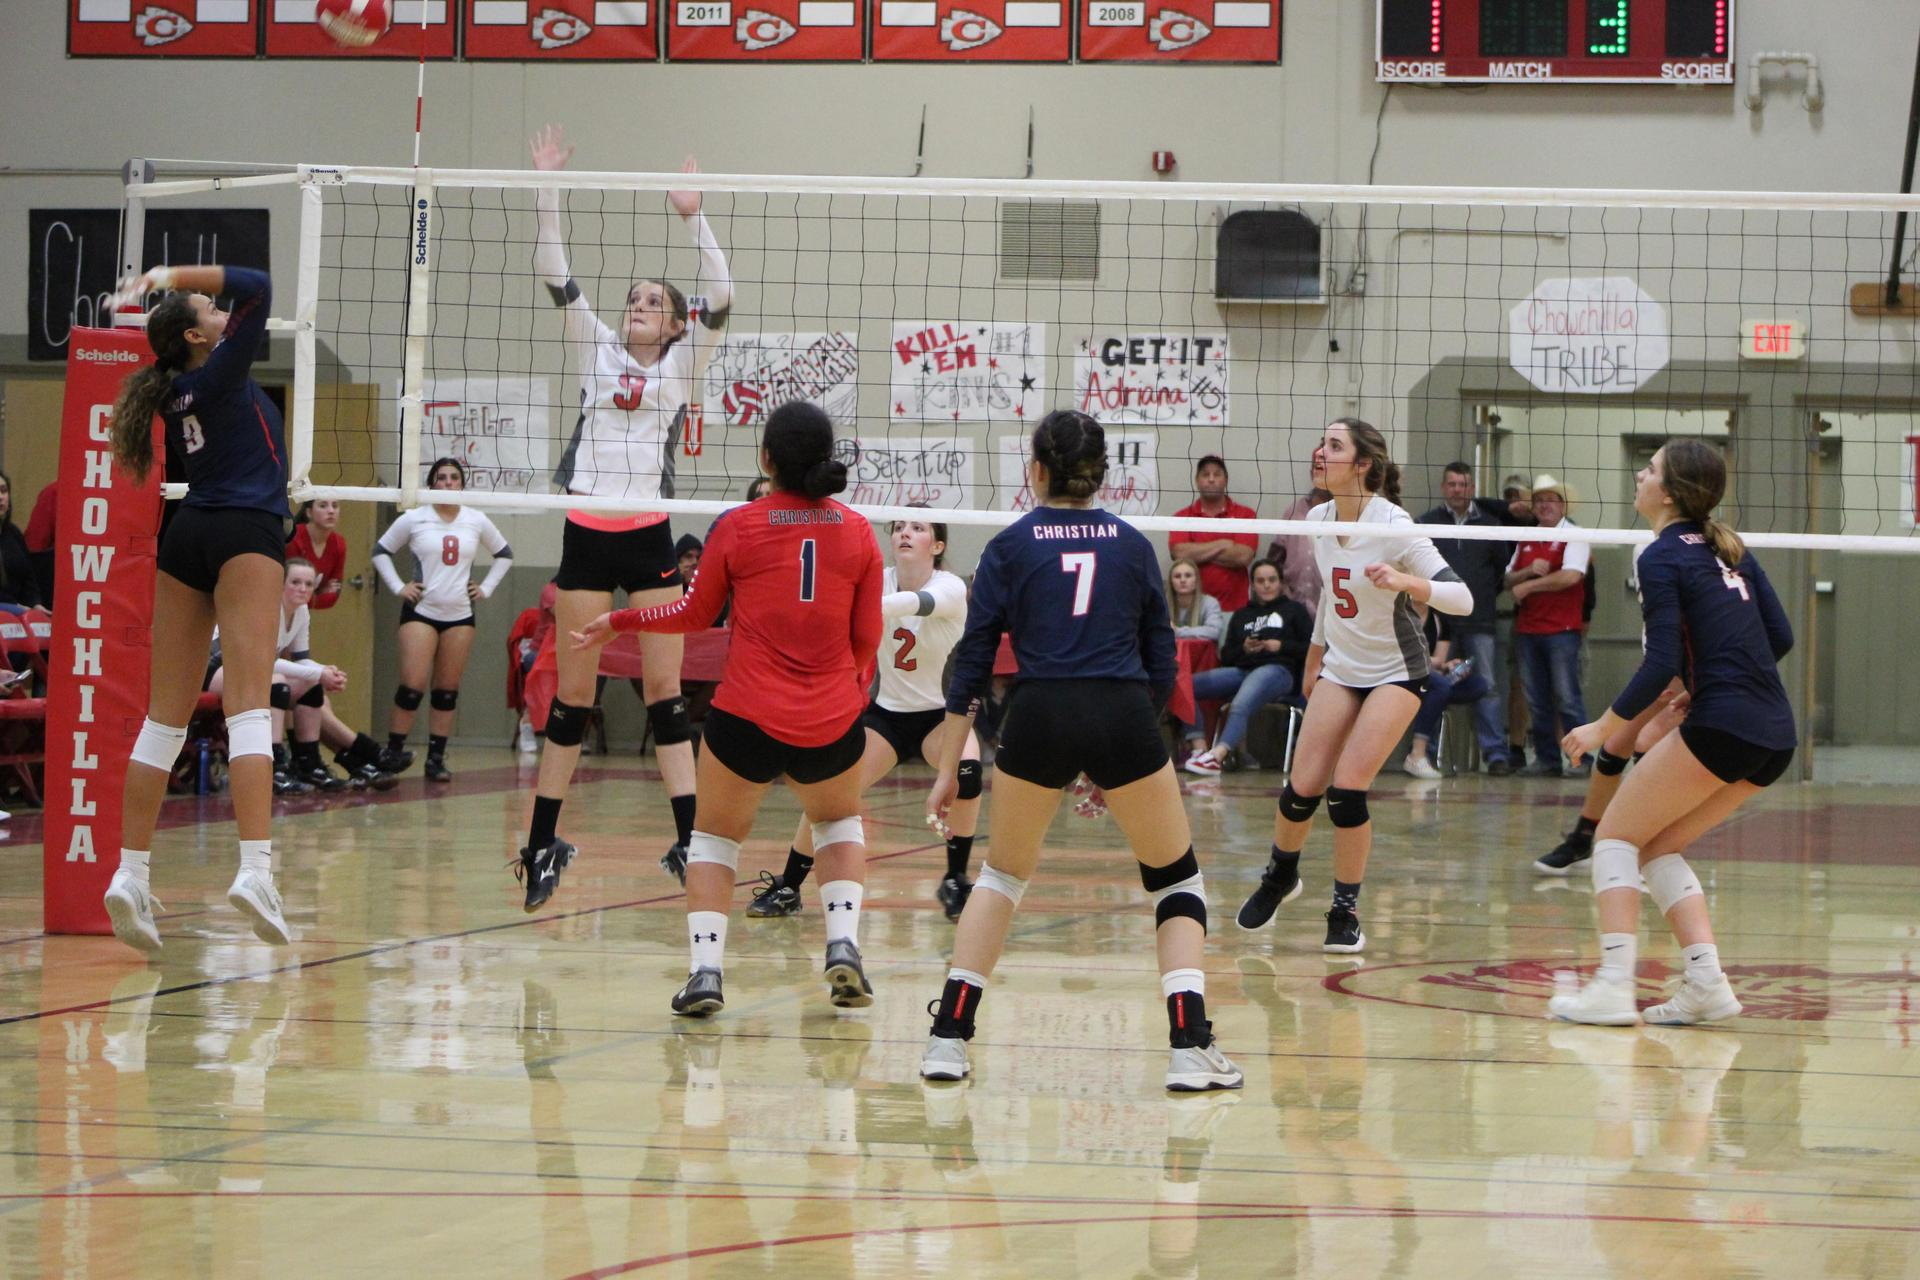 Girls playing against Vacaville Christian